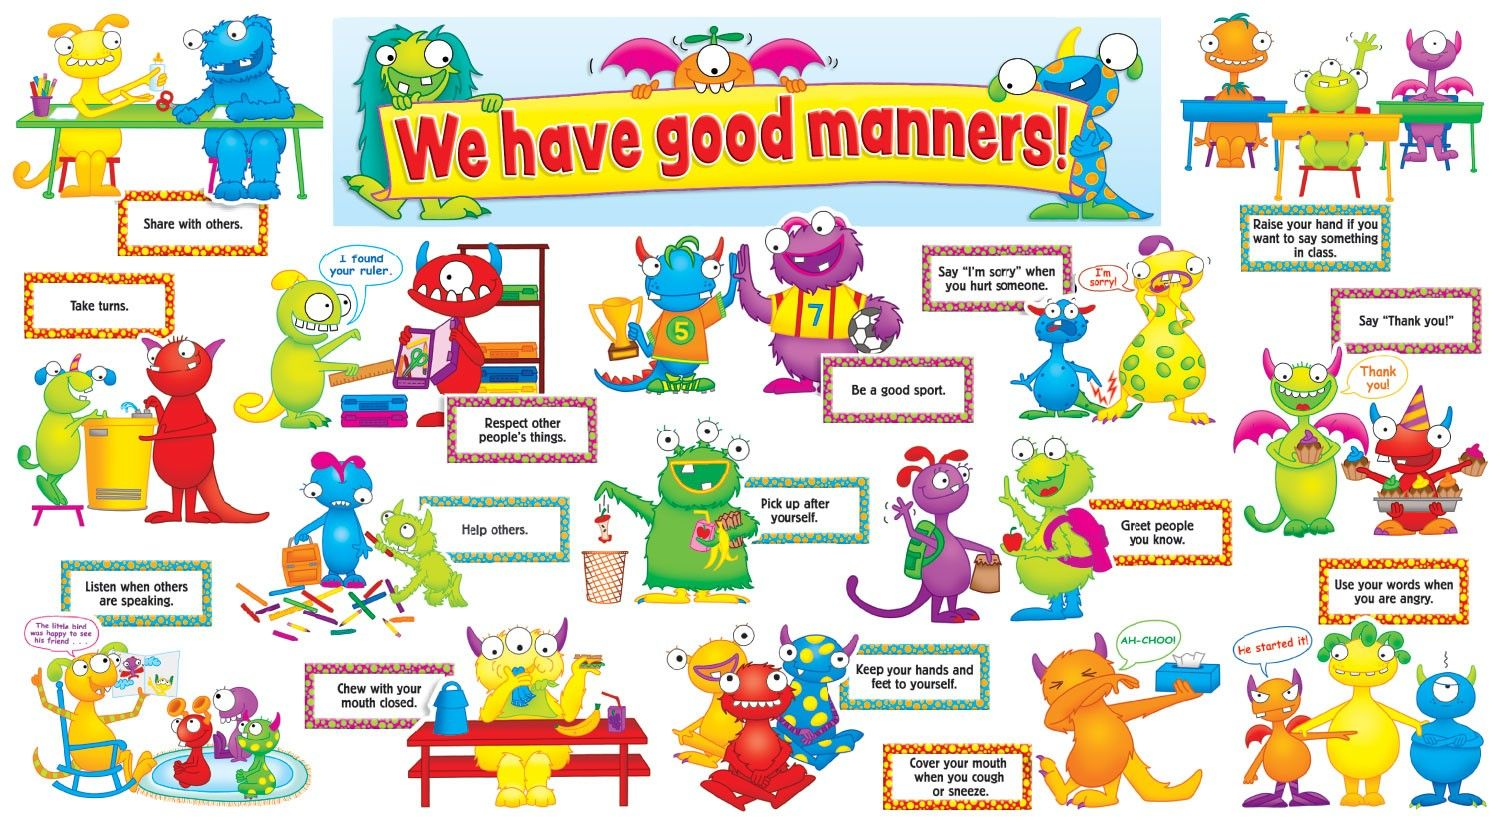 Good Manners For Kids Preschool Perfect For First Day Of Co Op Class With The Discovery Kids